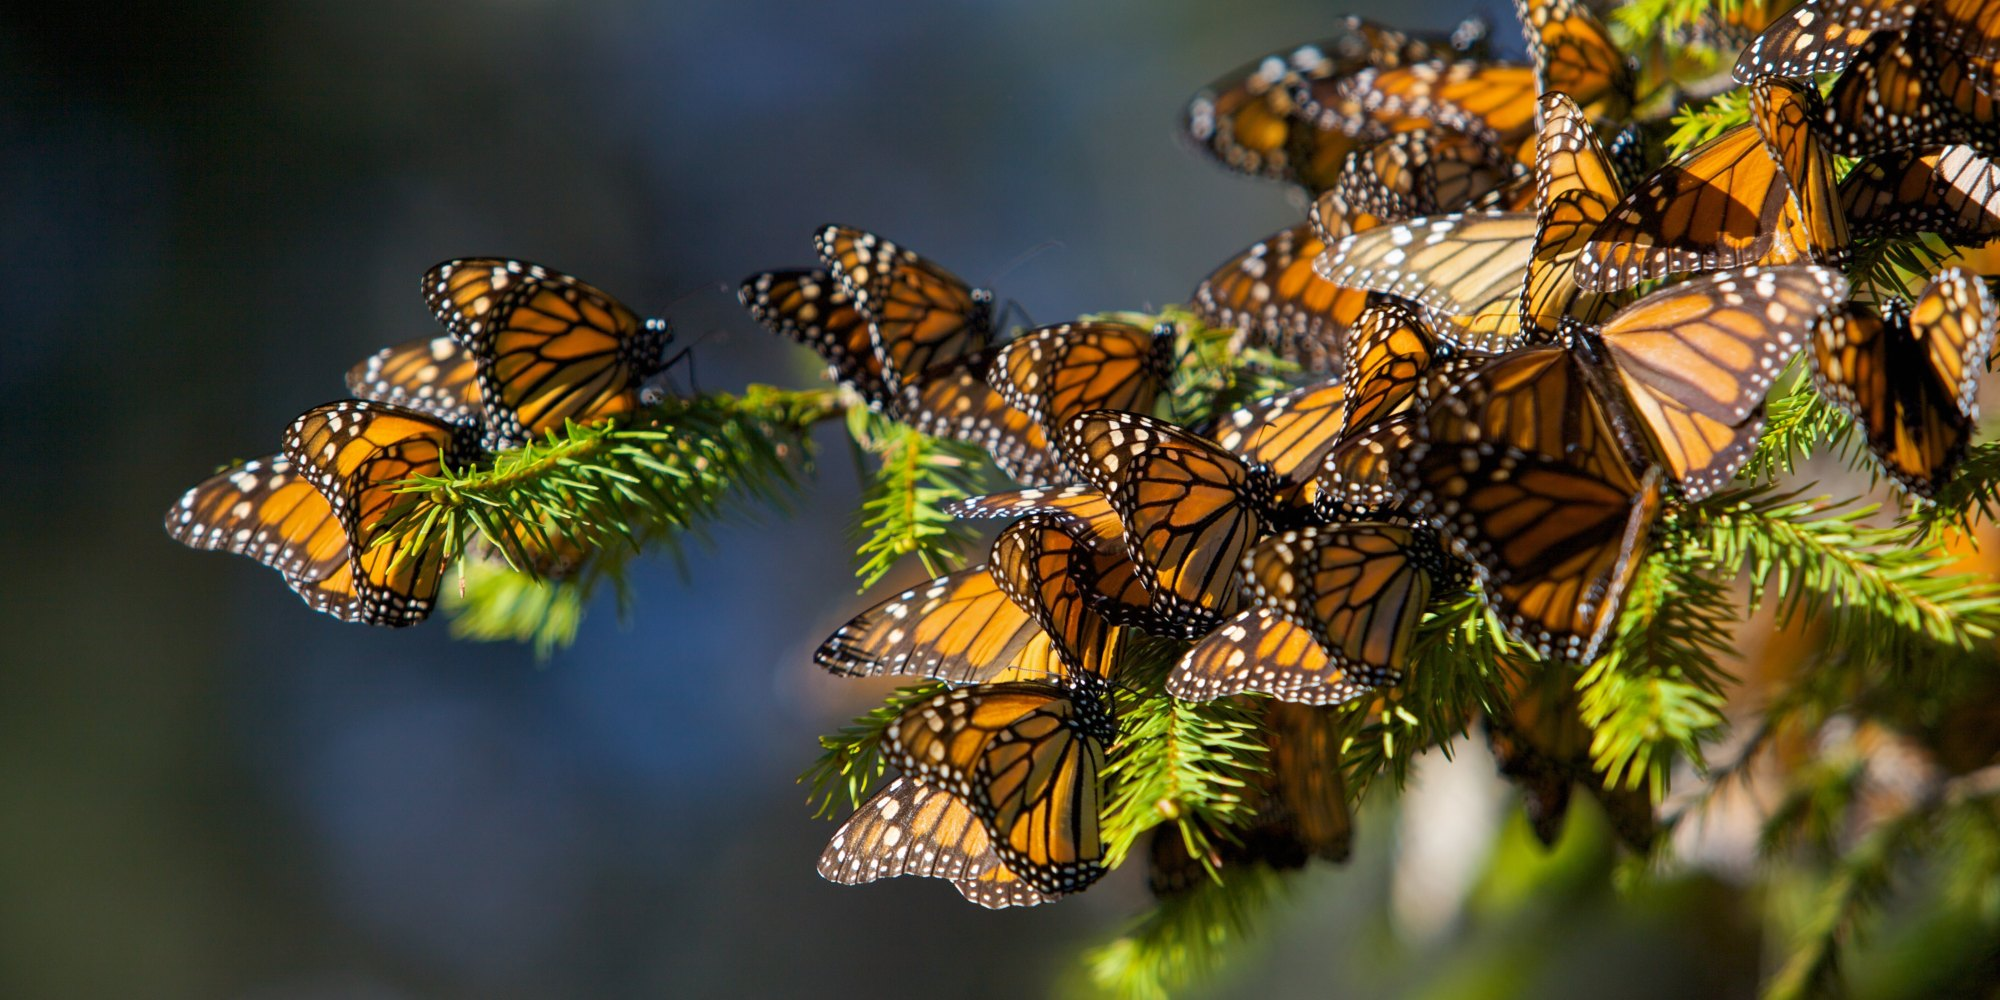 Monarch butterfly migration tree - photo#27